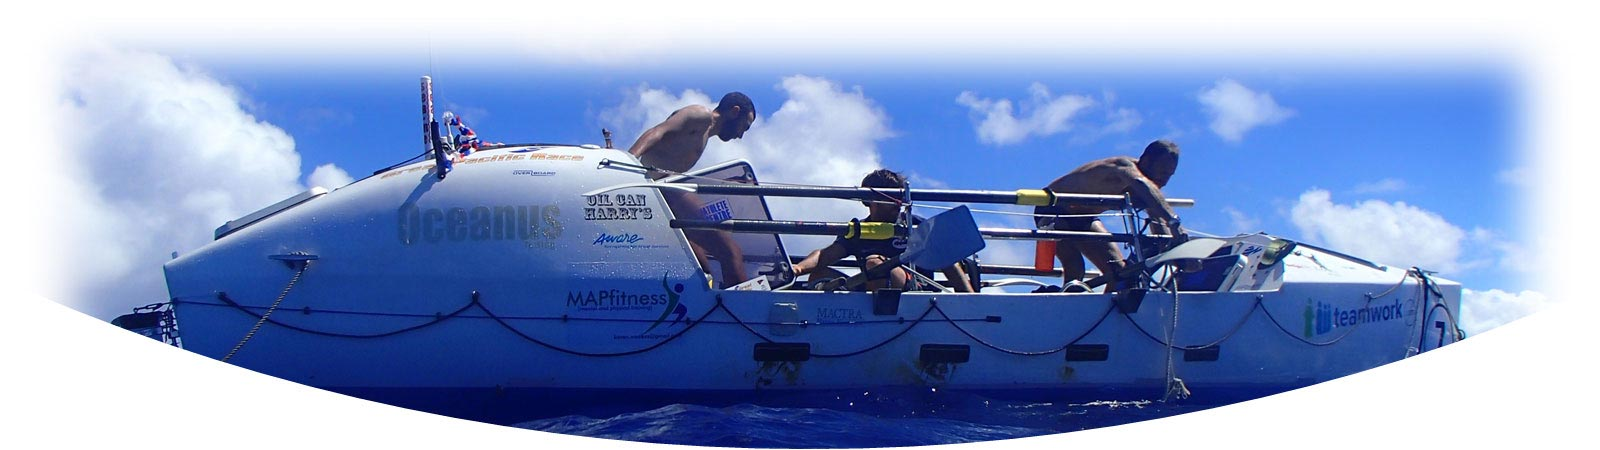 Barry Hayes crossing the Pacific Ocean in a rowing boat